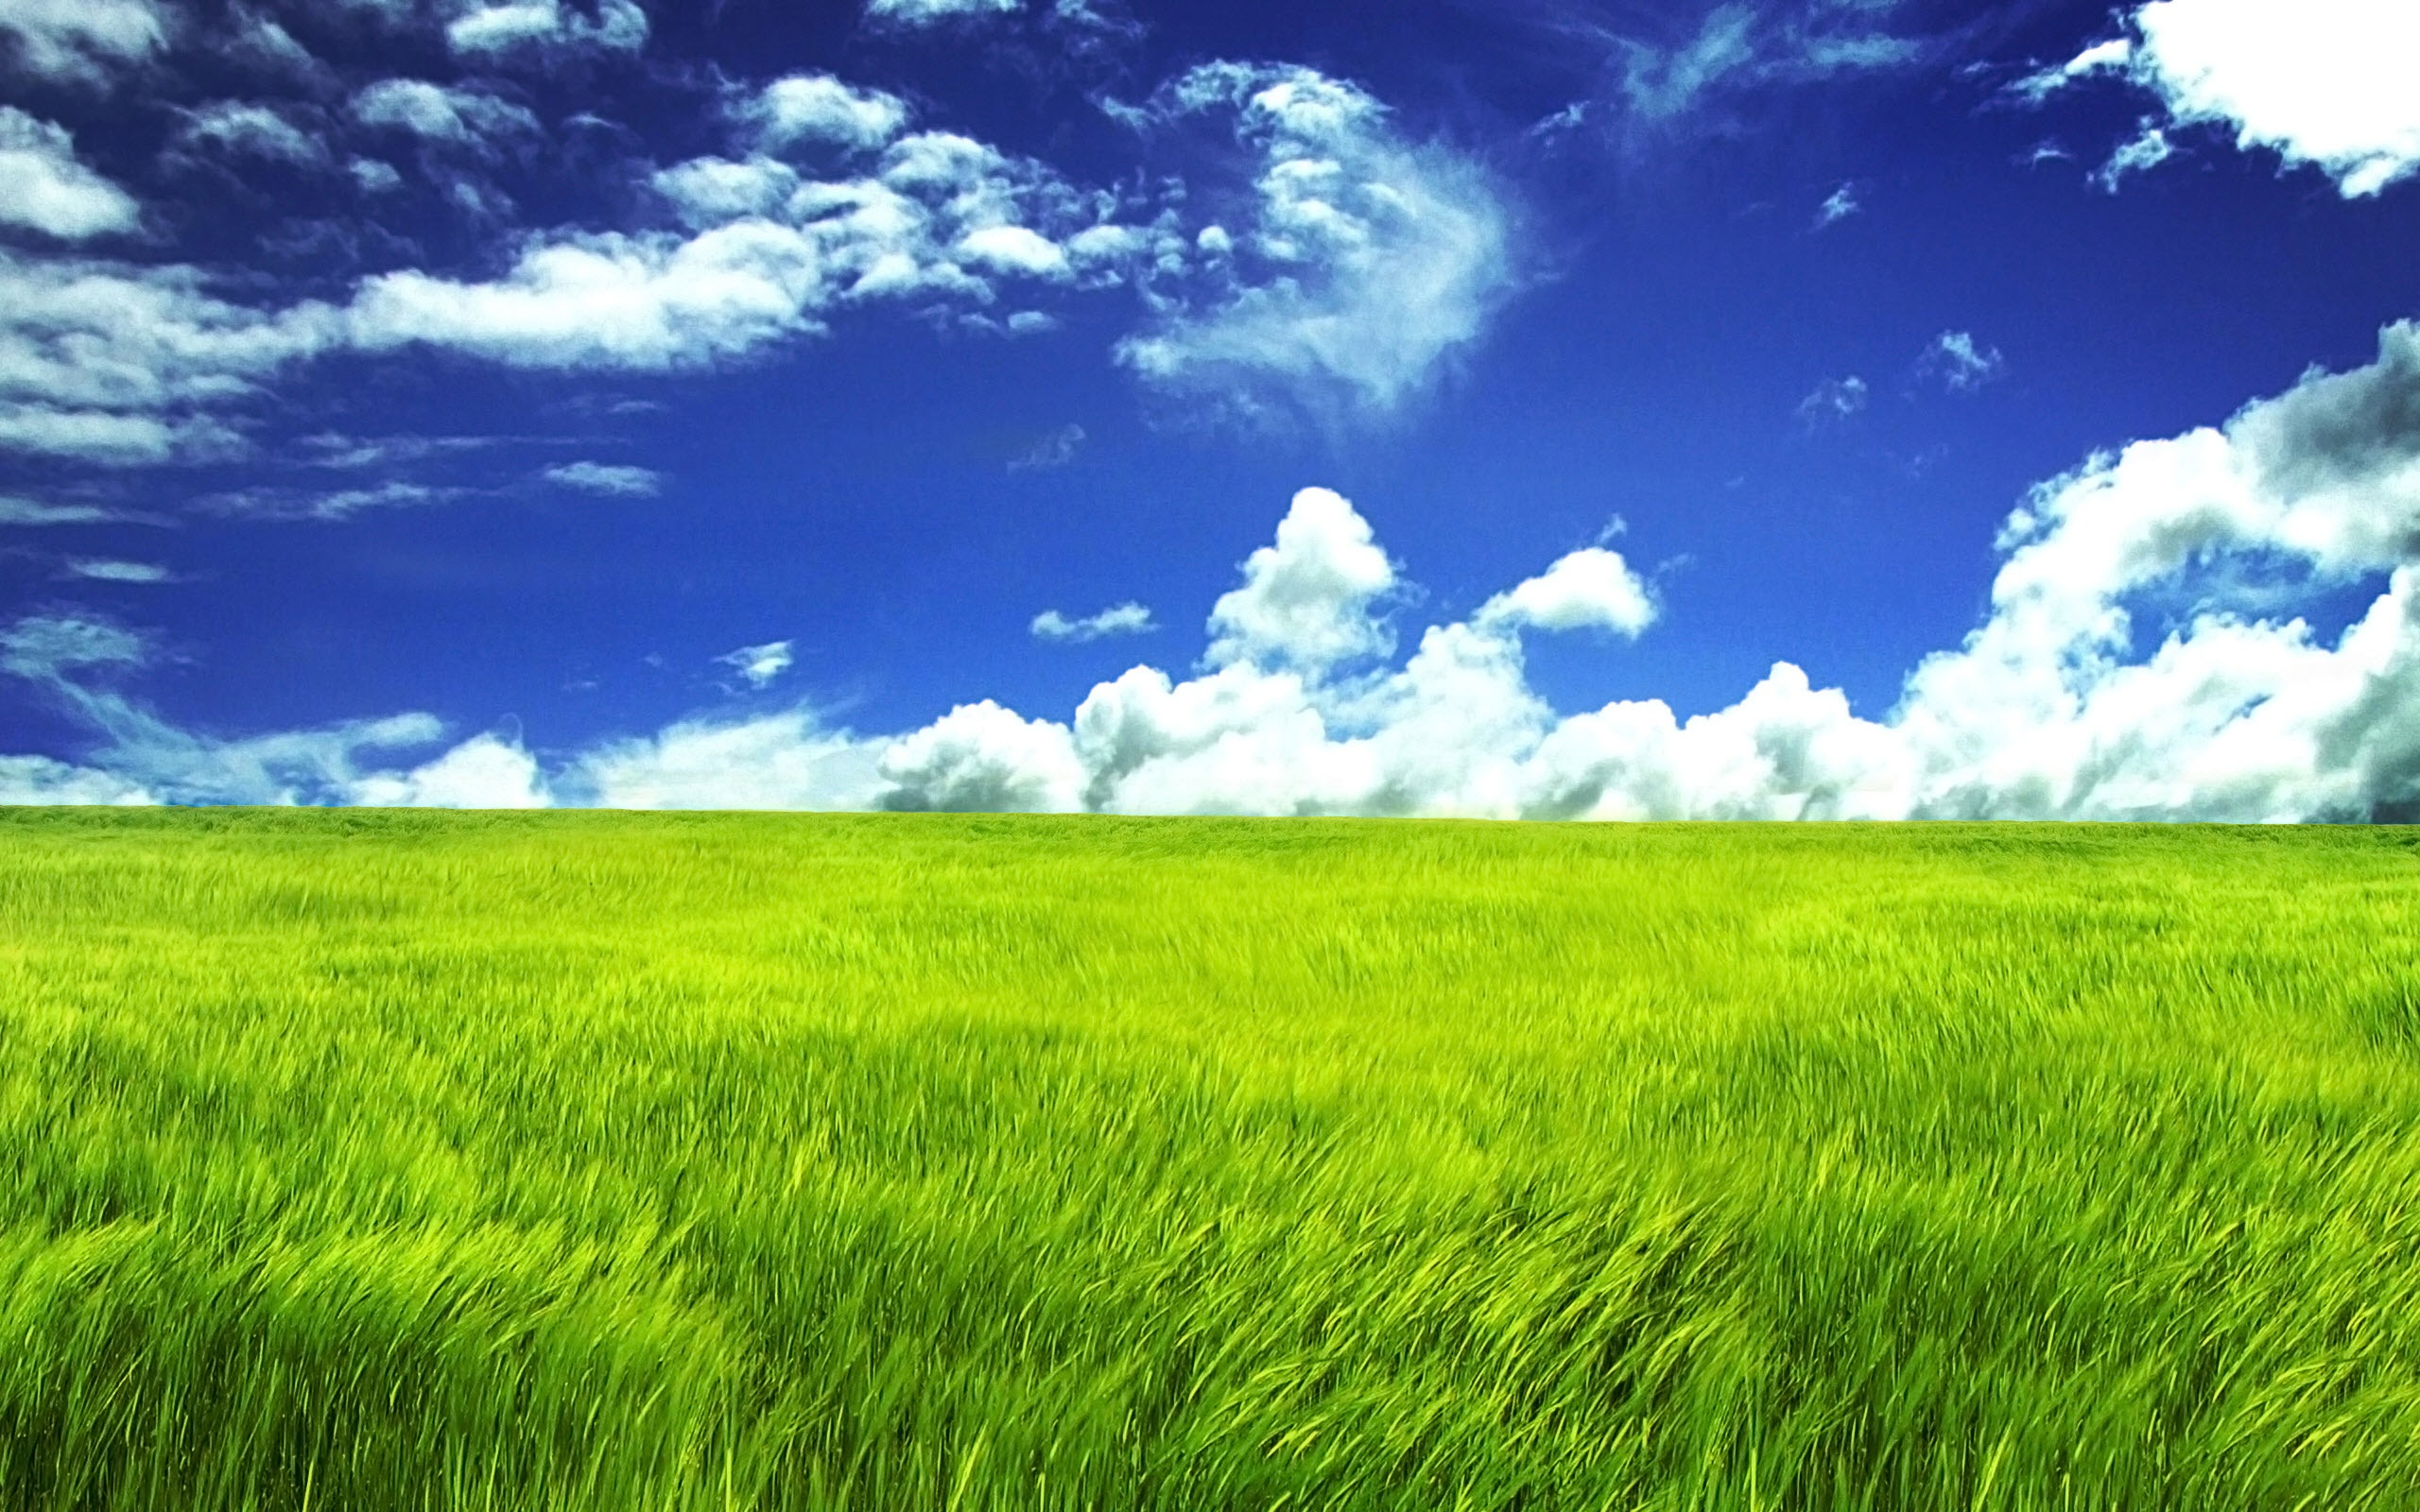 Grasslands Background